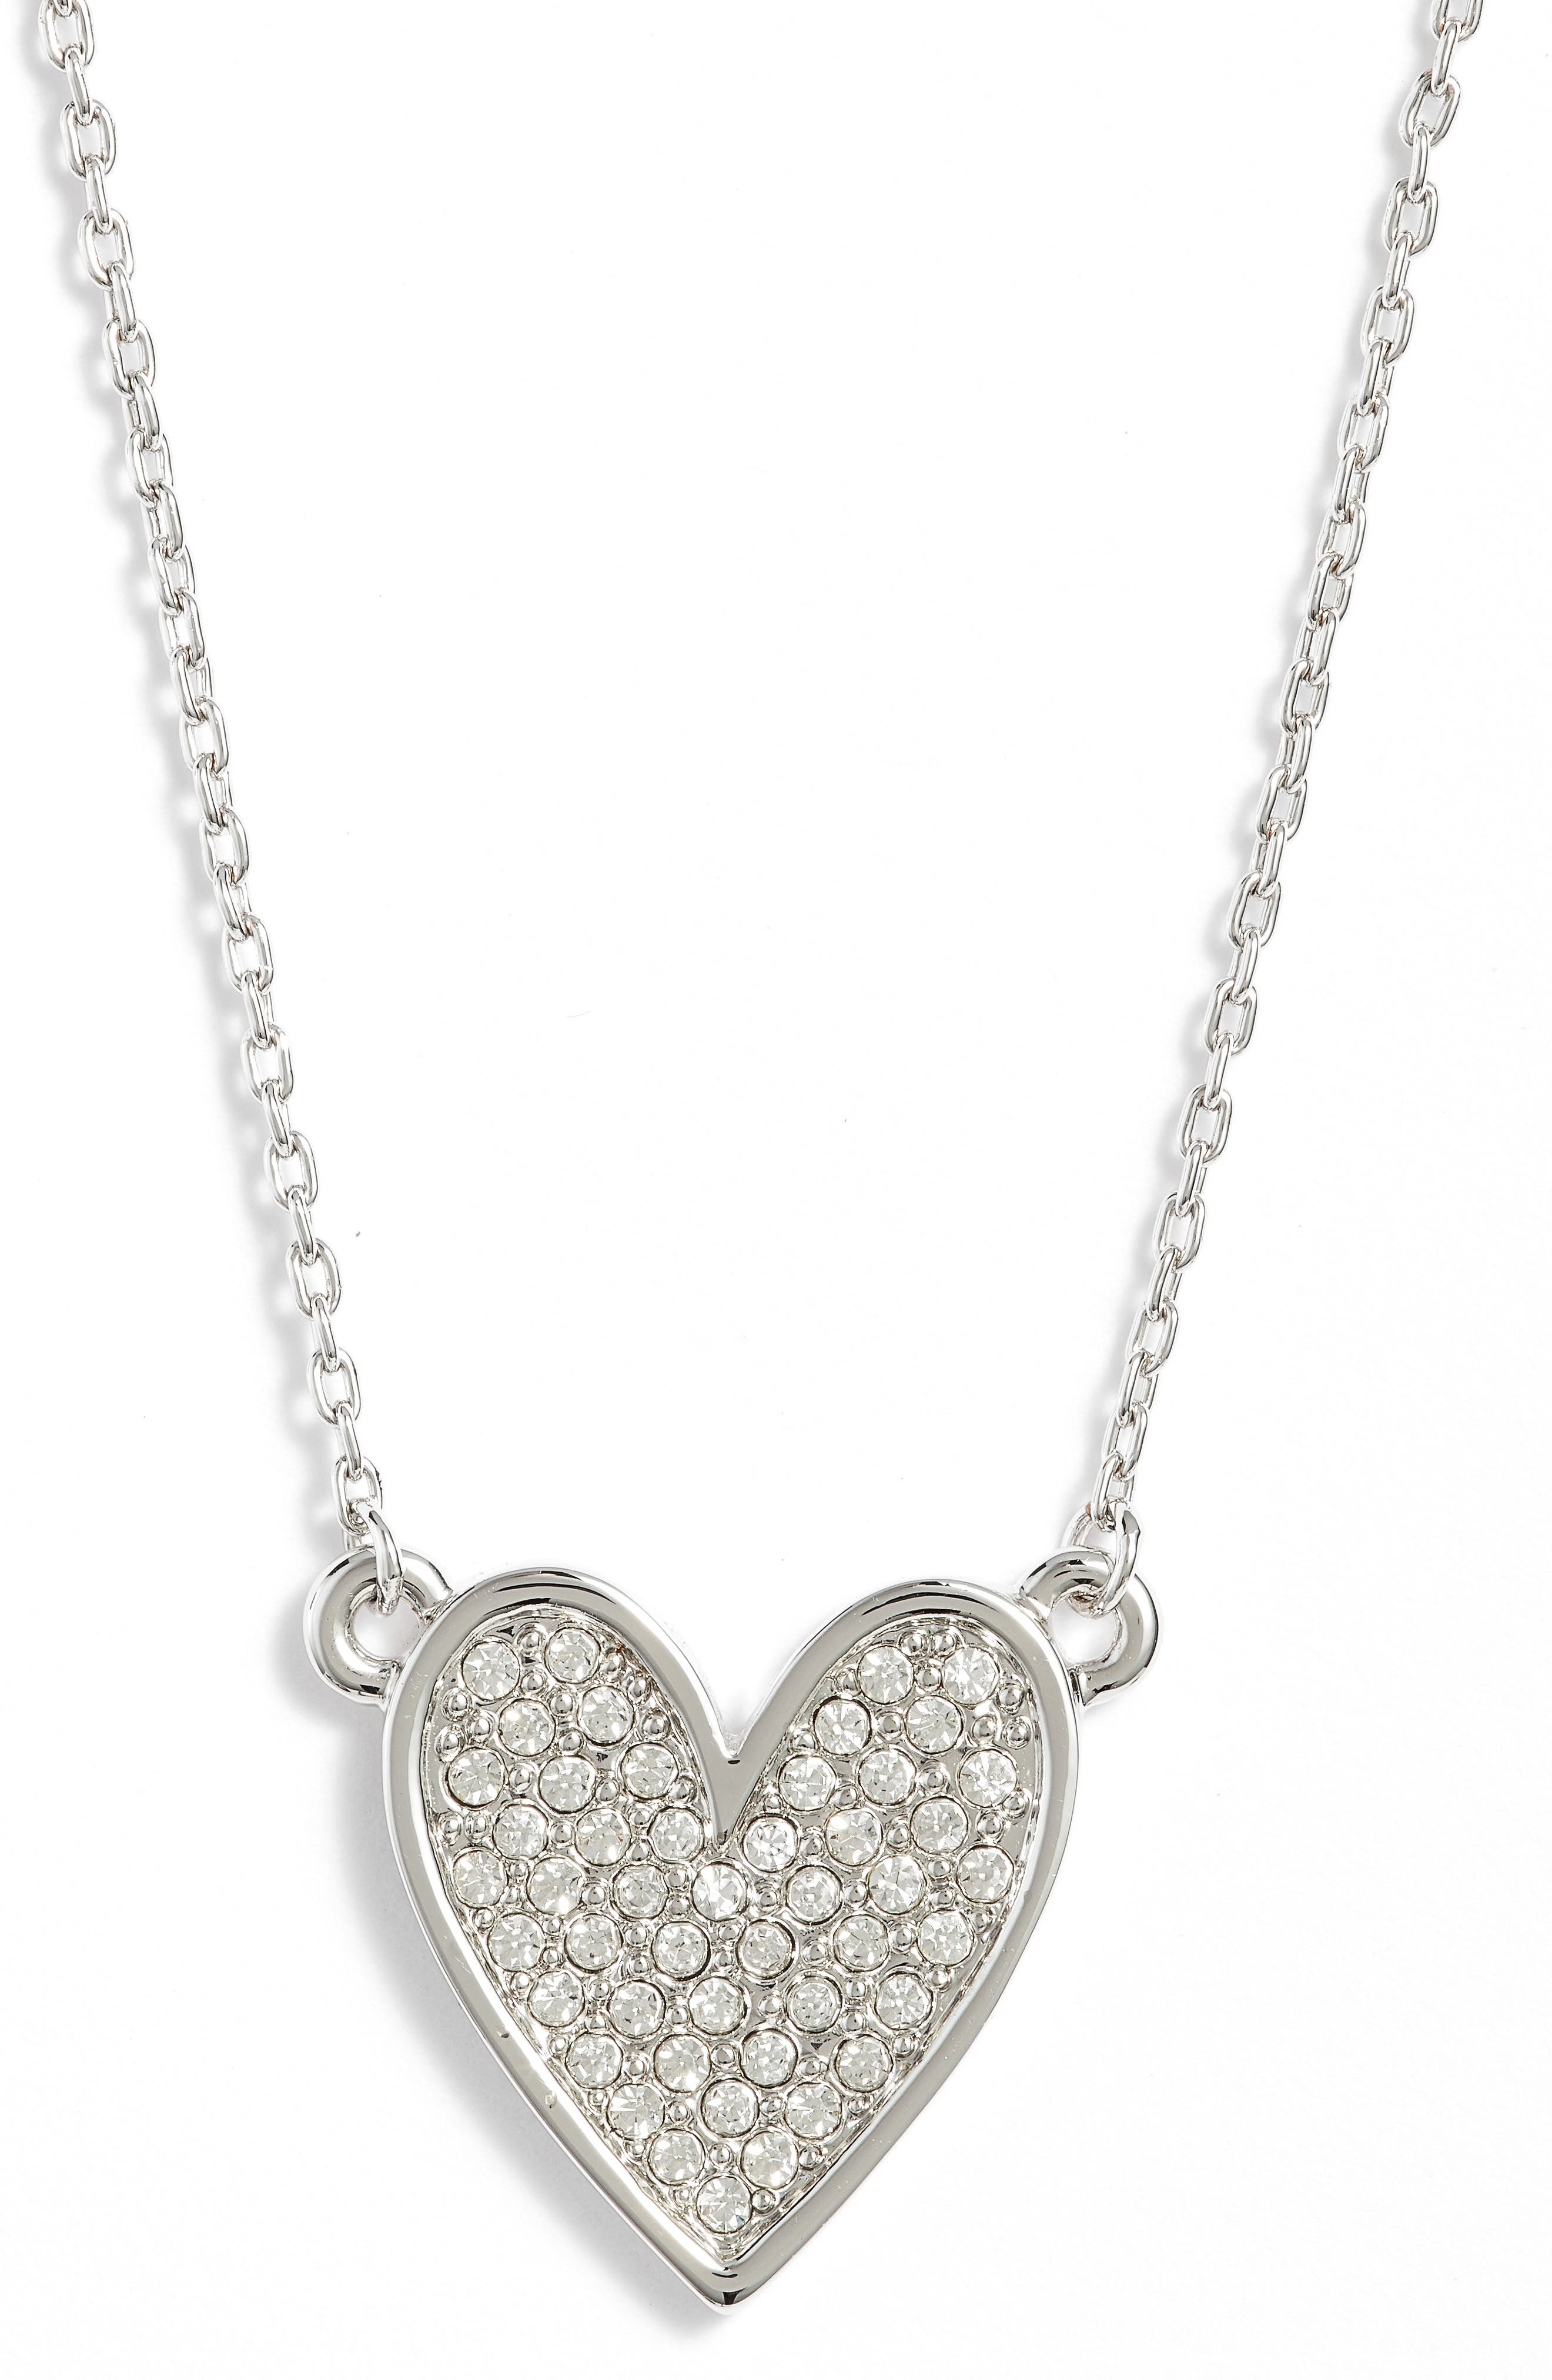 Pavé Heart Pendant Necklace,                             Main thumbnail 1, color,                             Silver